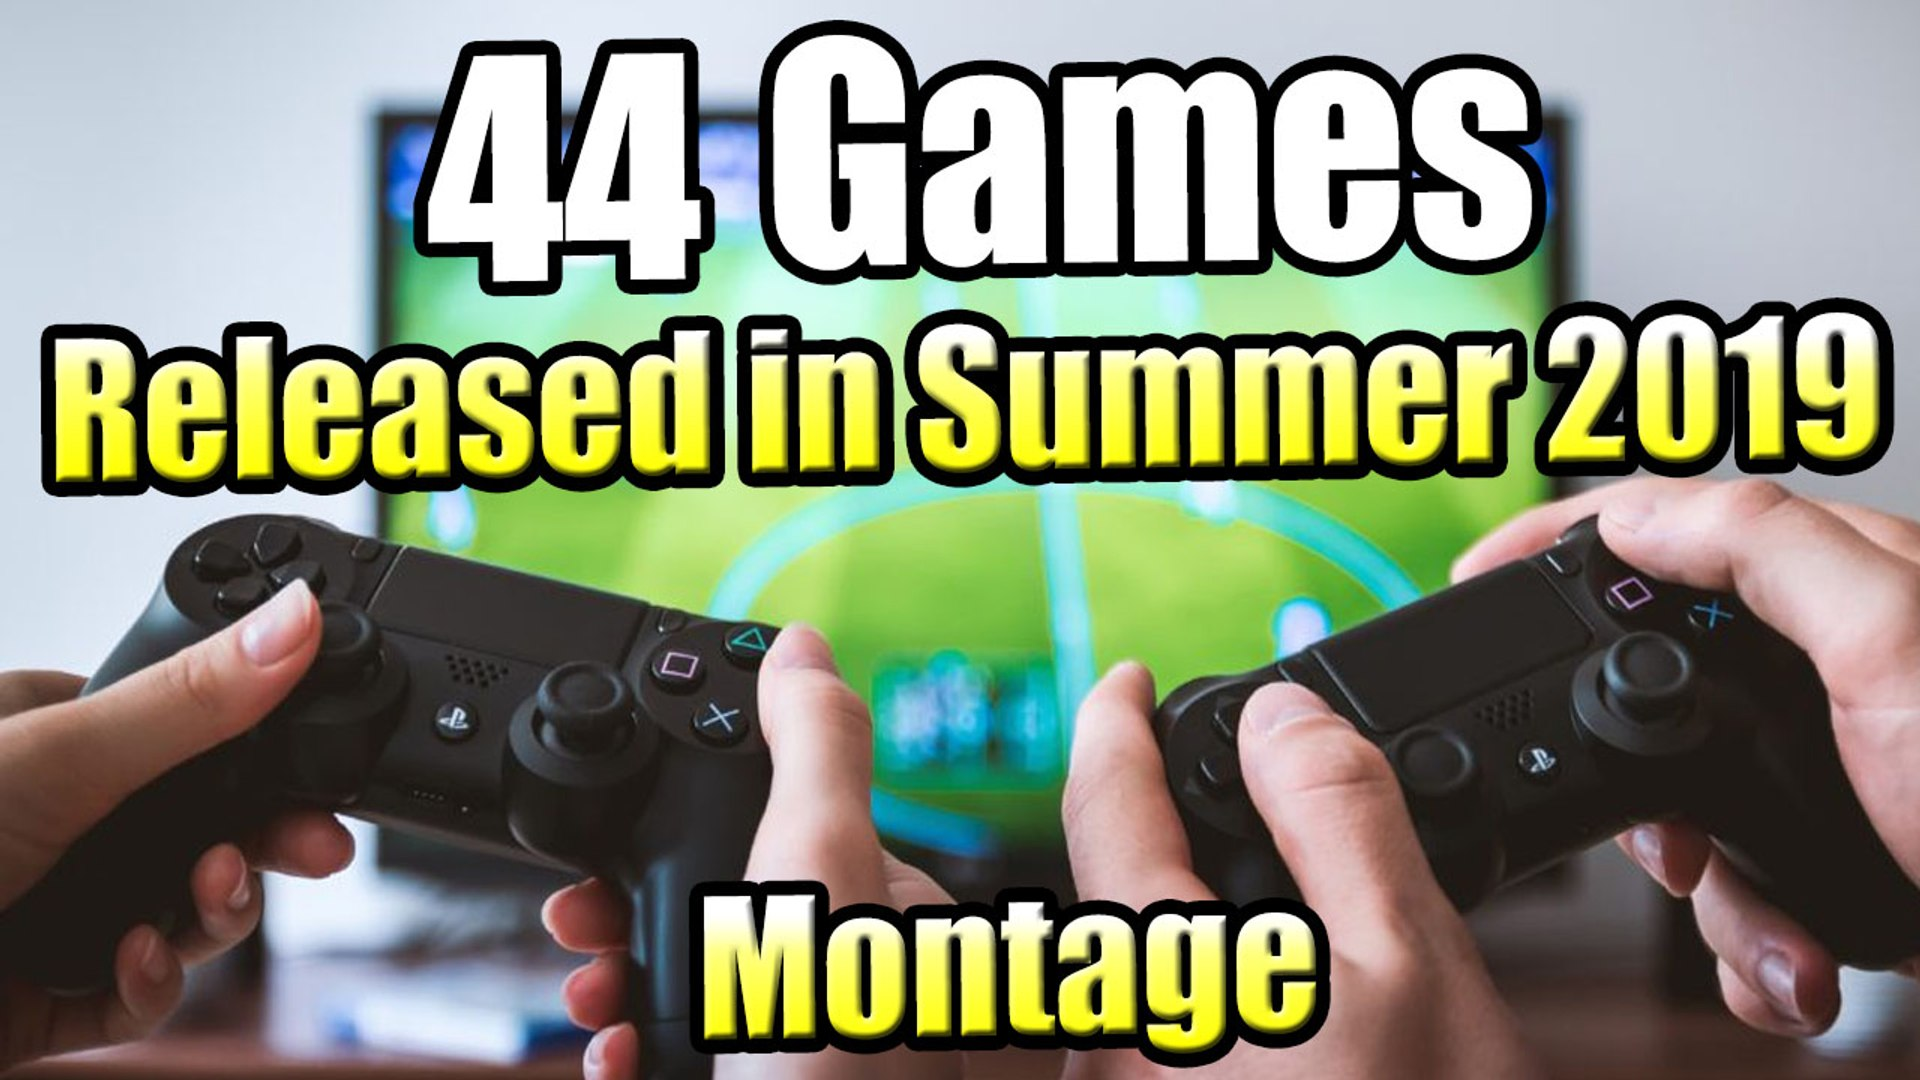 44 Games Released in Summer 2019 - 30 Seconds Montage